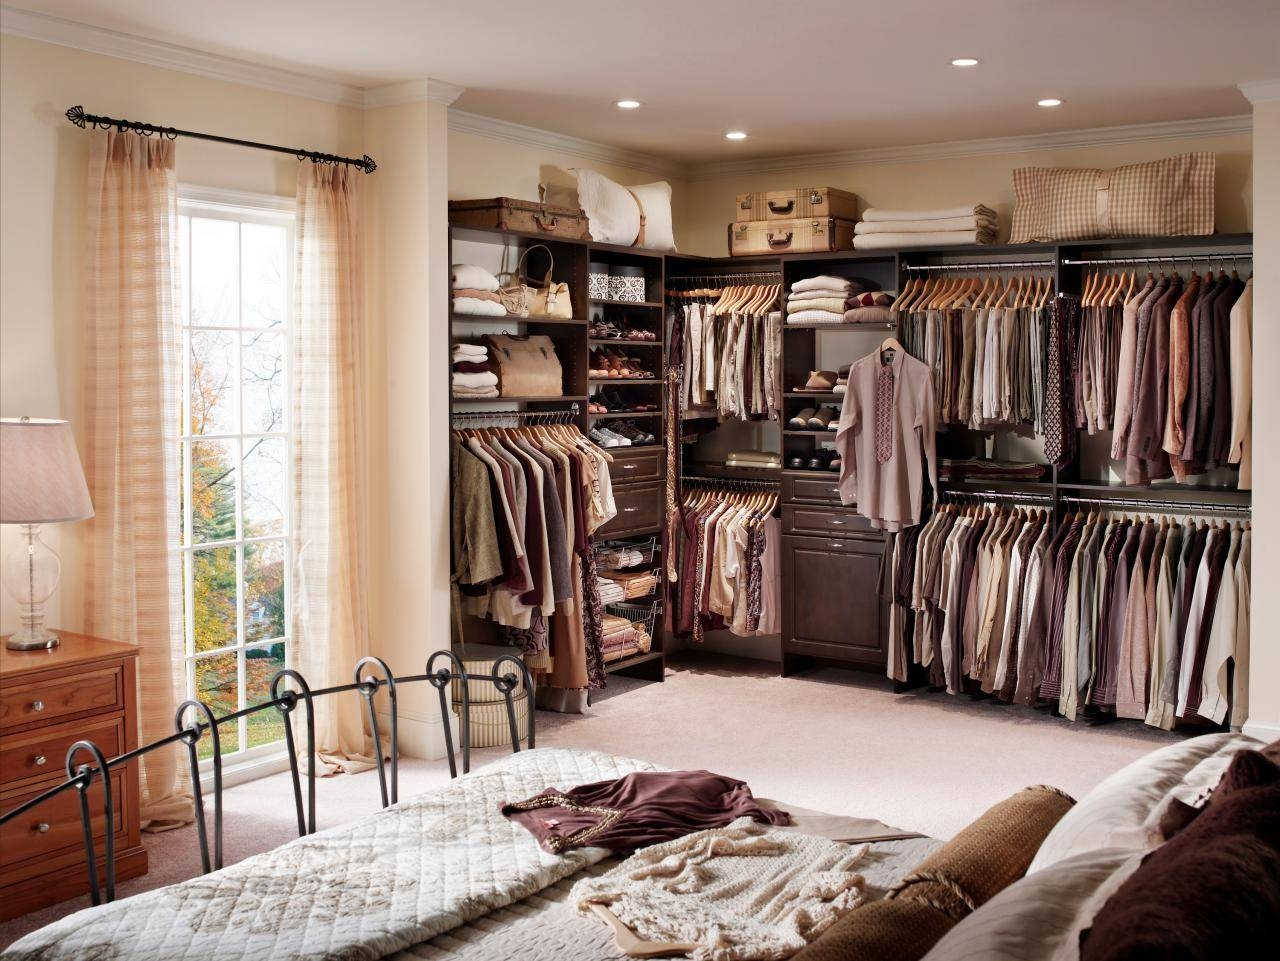 Top 3 Styles Of Closets | Hgtv for Wardrobe Double Hanging Rail (Image 22 of 30)